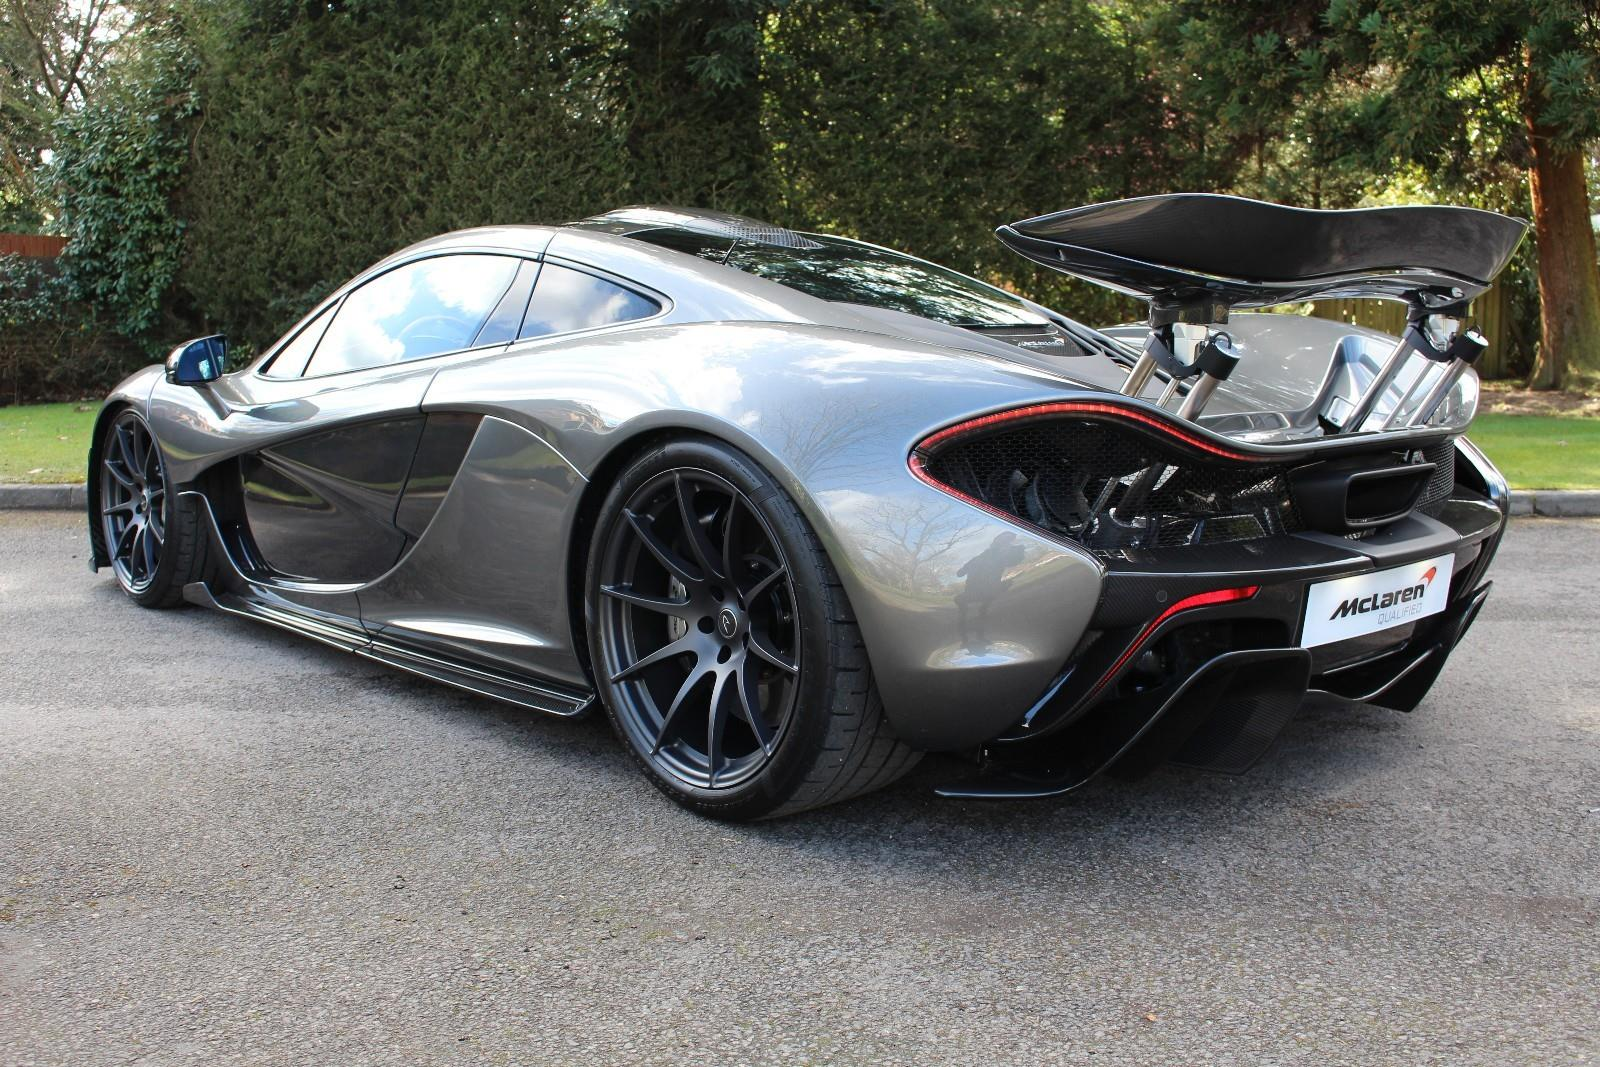 Mclaren P1 - Windsor Great Cars